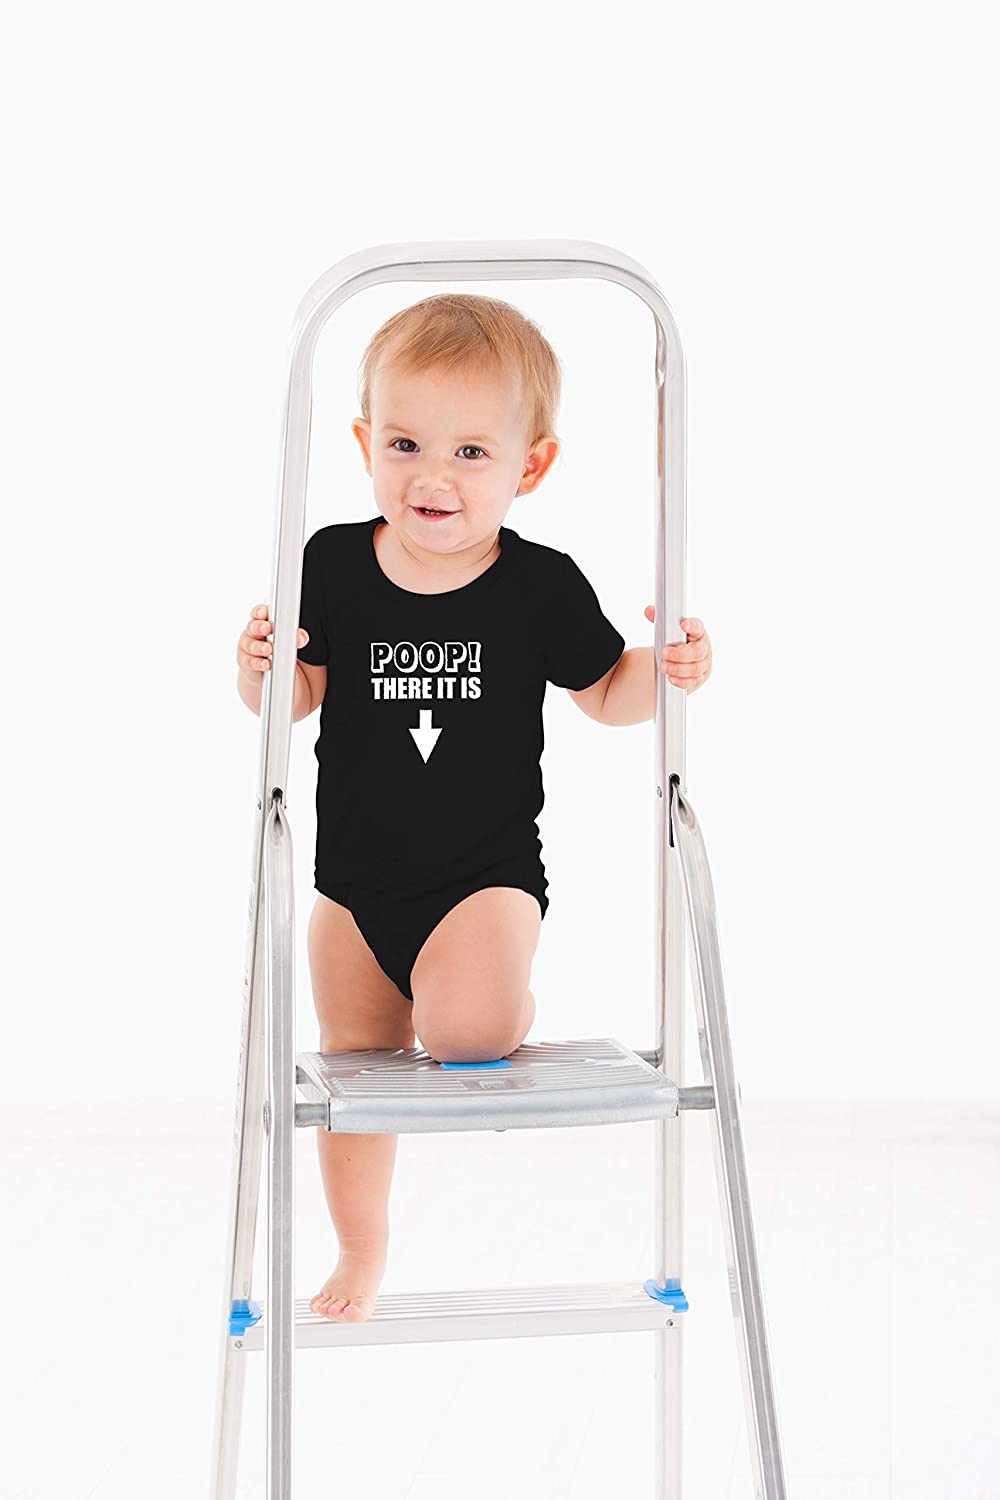 Funny Cute One-Piece Infant Baby Bodysuit Parody Song There It is AW Fashions Poop